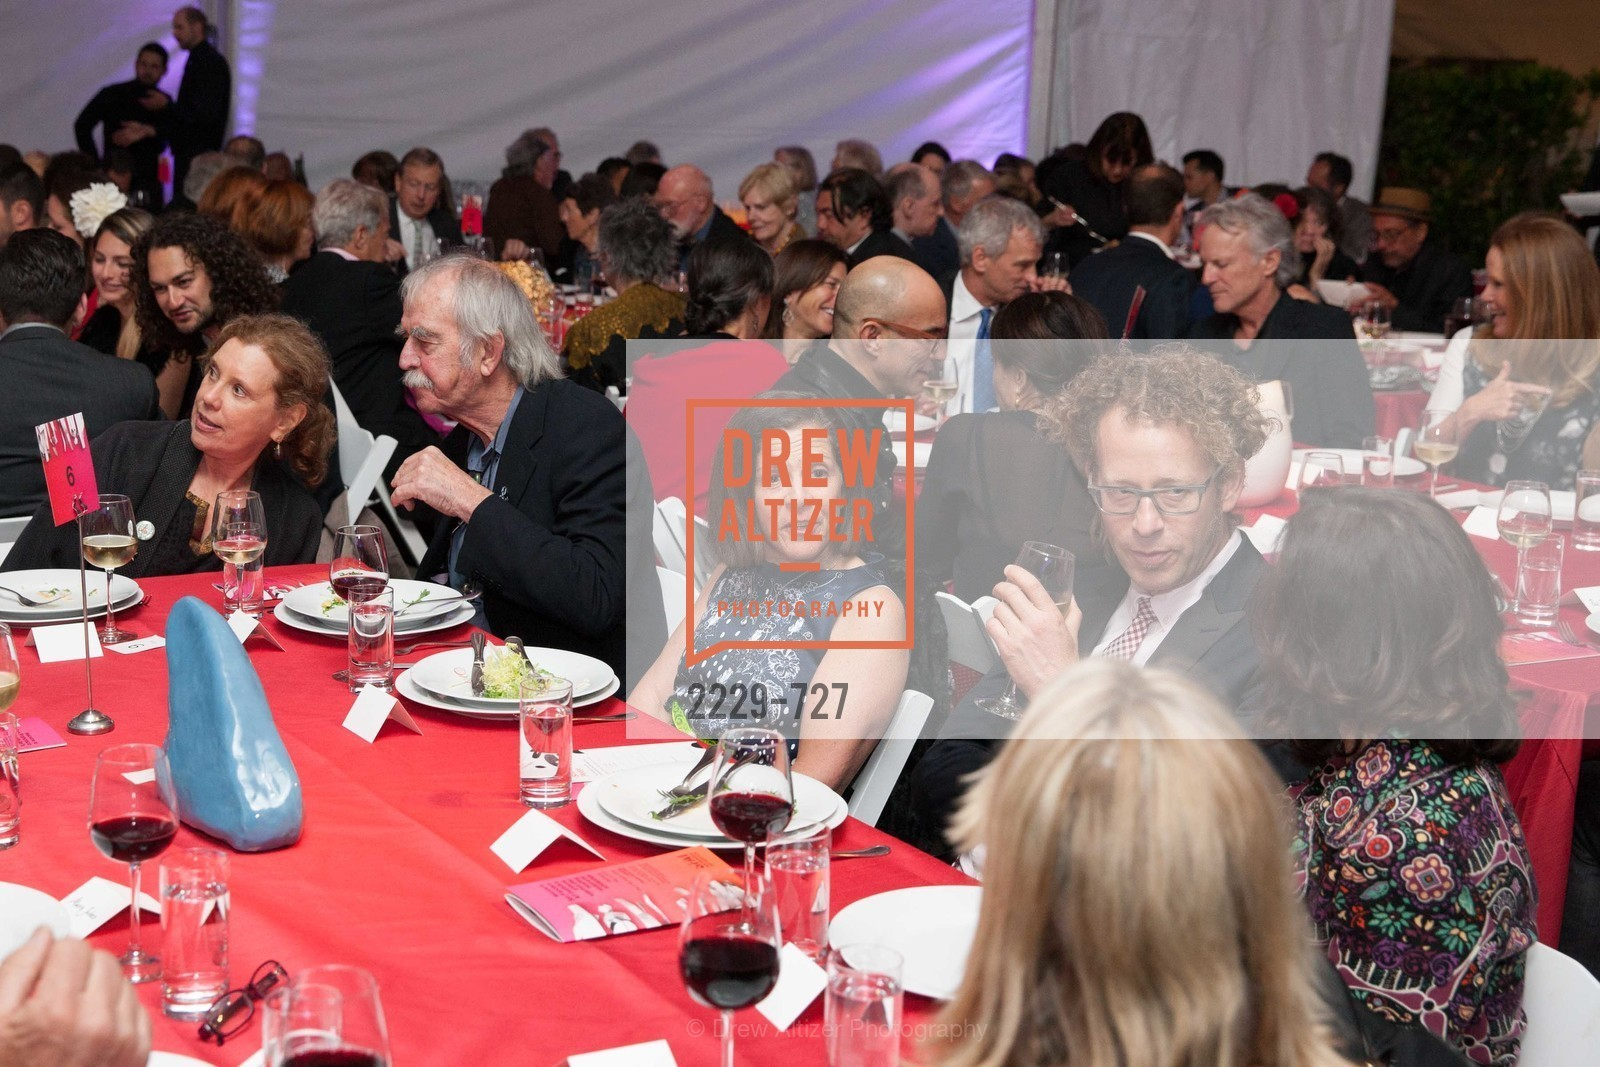 Marjorie Swig, SAN FRANCISCO ART INSTITUTE Gala Honoring Art Visionary and Advocate ROSELYNE CHROMAN SWIG, US, May 13th, 2015,Drew Altizer, Drew Altizer Photography, full-service agency, private events, San Francisco photographer, photographer california